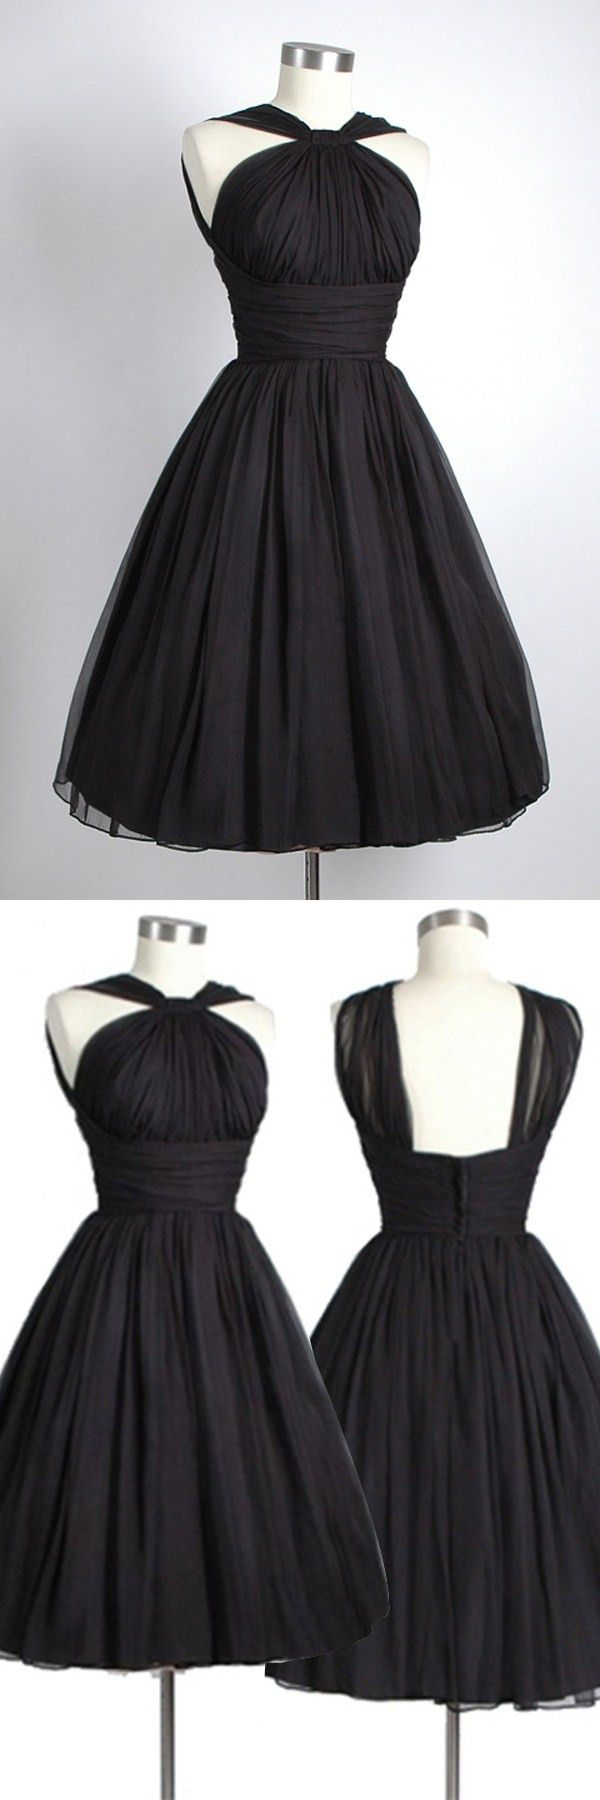 2016 homecoming dresses,black homecoming dresses,vintage prom dresses,short prom dresses,1950s homecoming dresses,black modest homecoming dresses,junior vintage homecoming dresses,elegant black party dresses